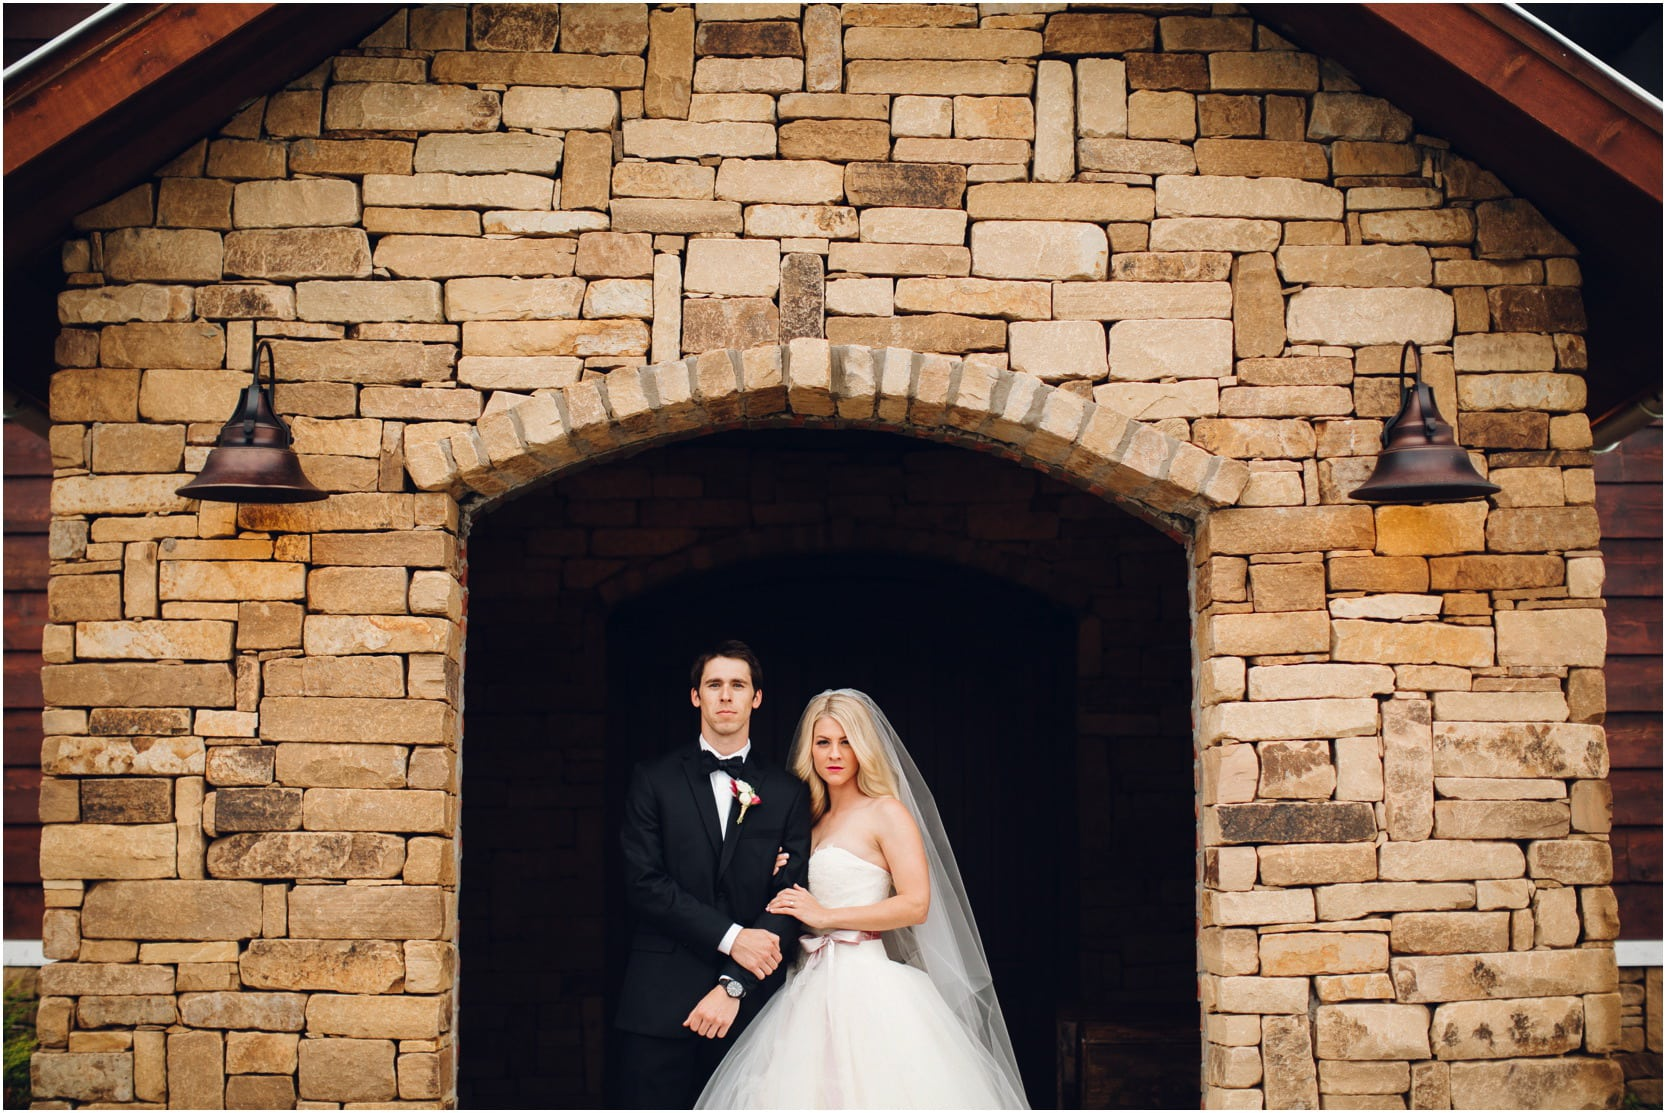 coderhillengburg_oklahoma_wedding__438_blogstomped